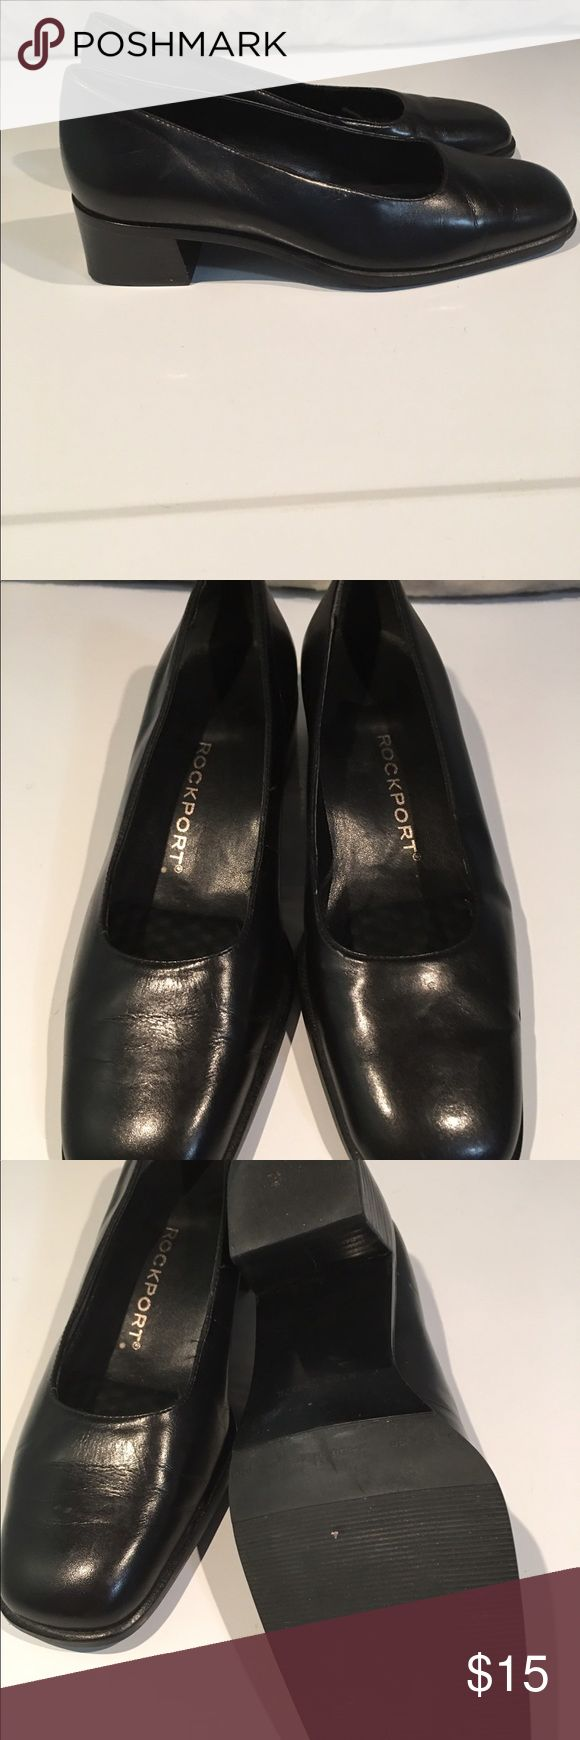 "Classic Rockport Black Pumps  size 6 These are beautiful and classic!!! Low 1"" heels. Tons of life left!!! We are cleaning out closets and have many designer items that need to find a new home for. Bundle bundle bundle!!! Rockport Shoes Heels"